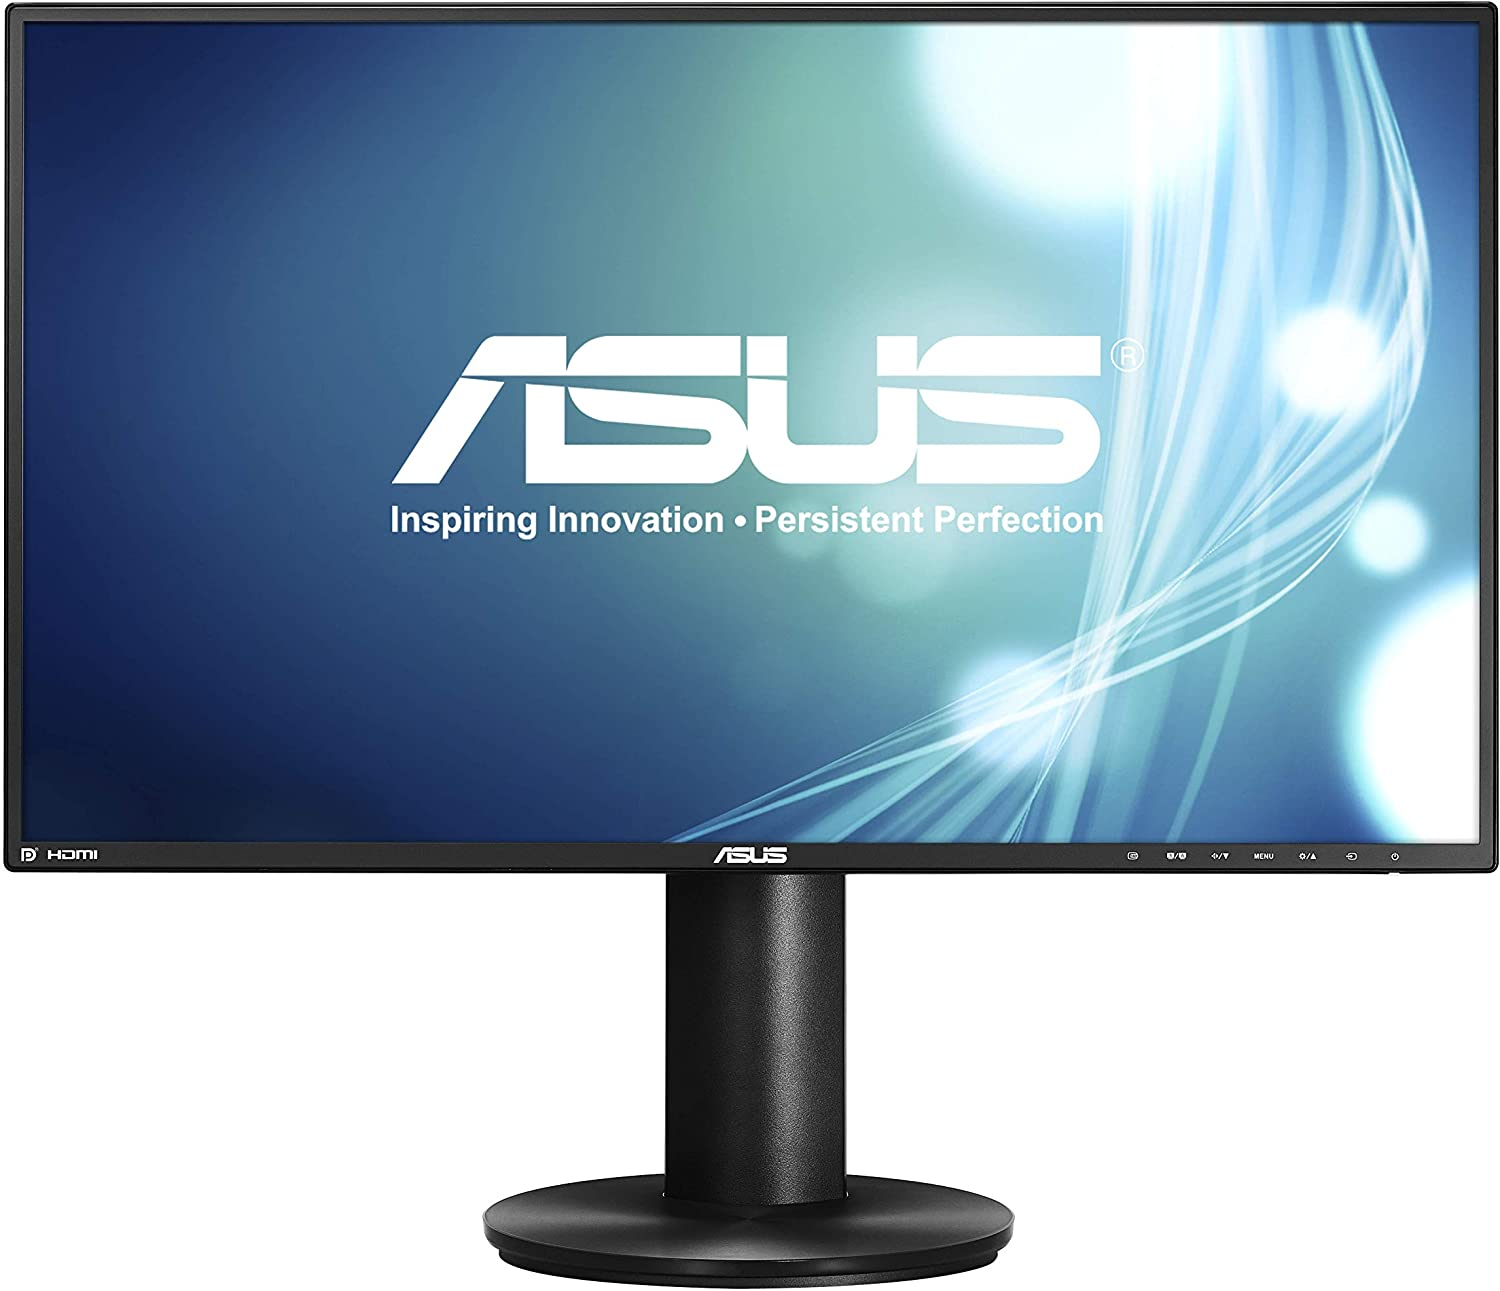 71voDiPvc0L. AC SL1500 Best Vertical Monitor for Streaming - Top 7 Choices and Reviews